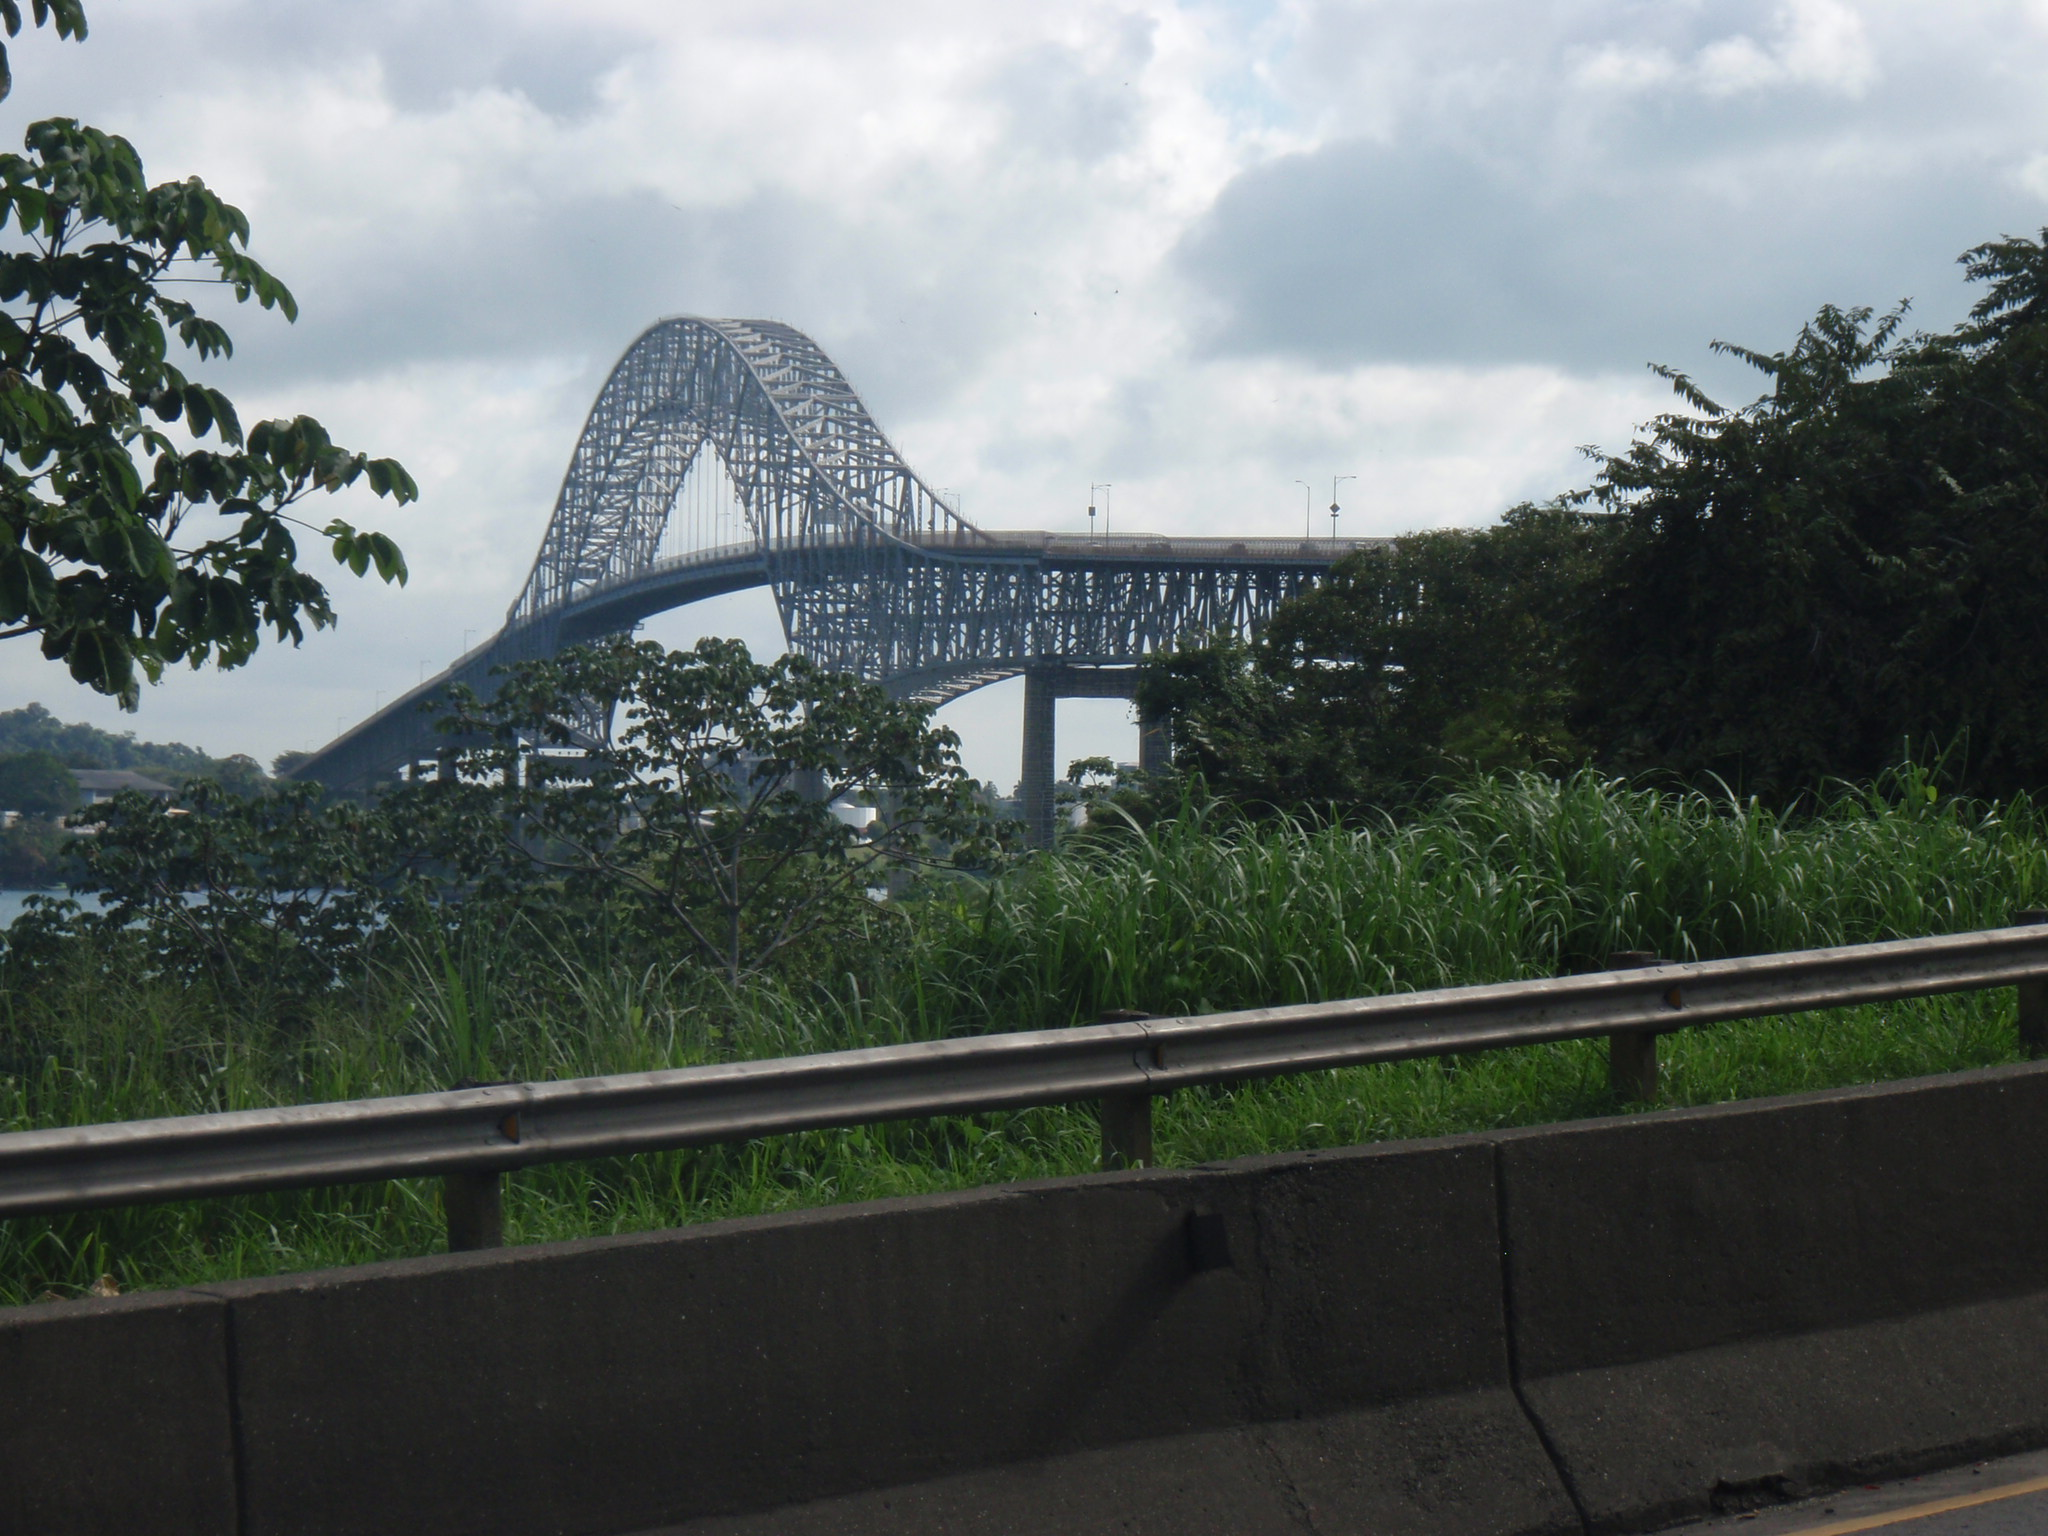 Puente de las Americas over the Southern entrance to the Panama Canal